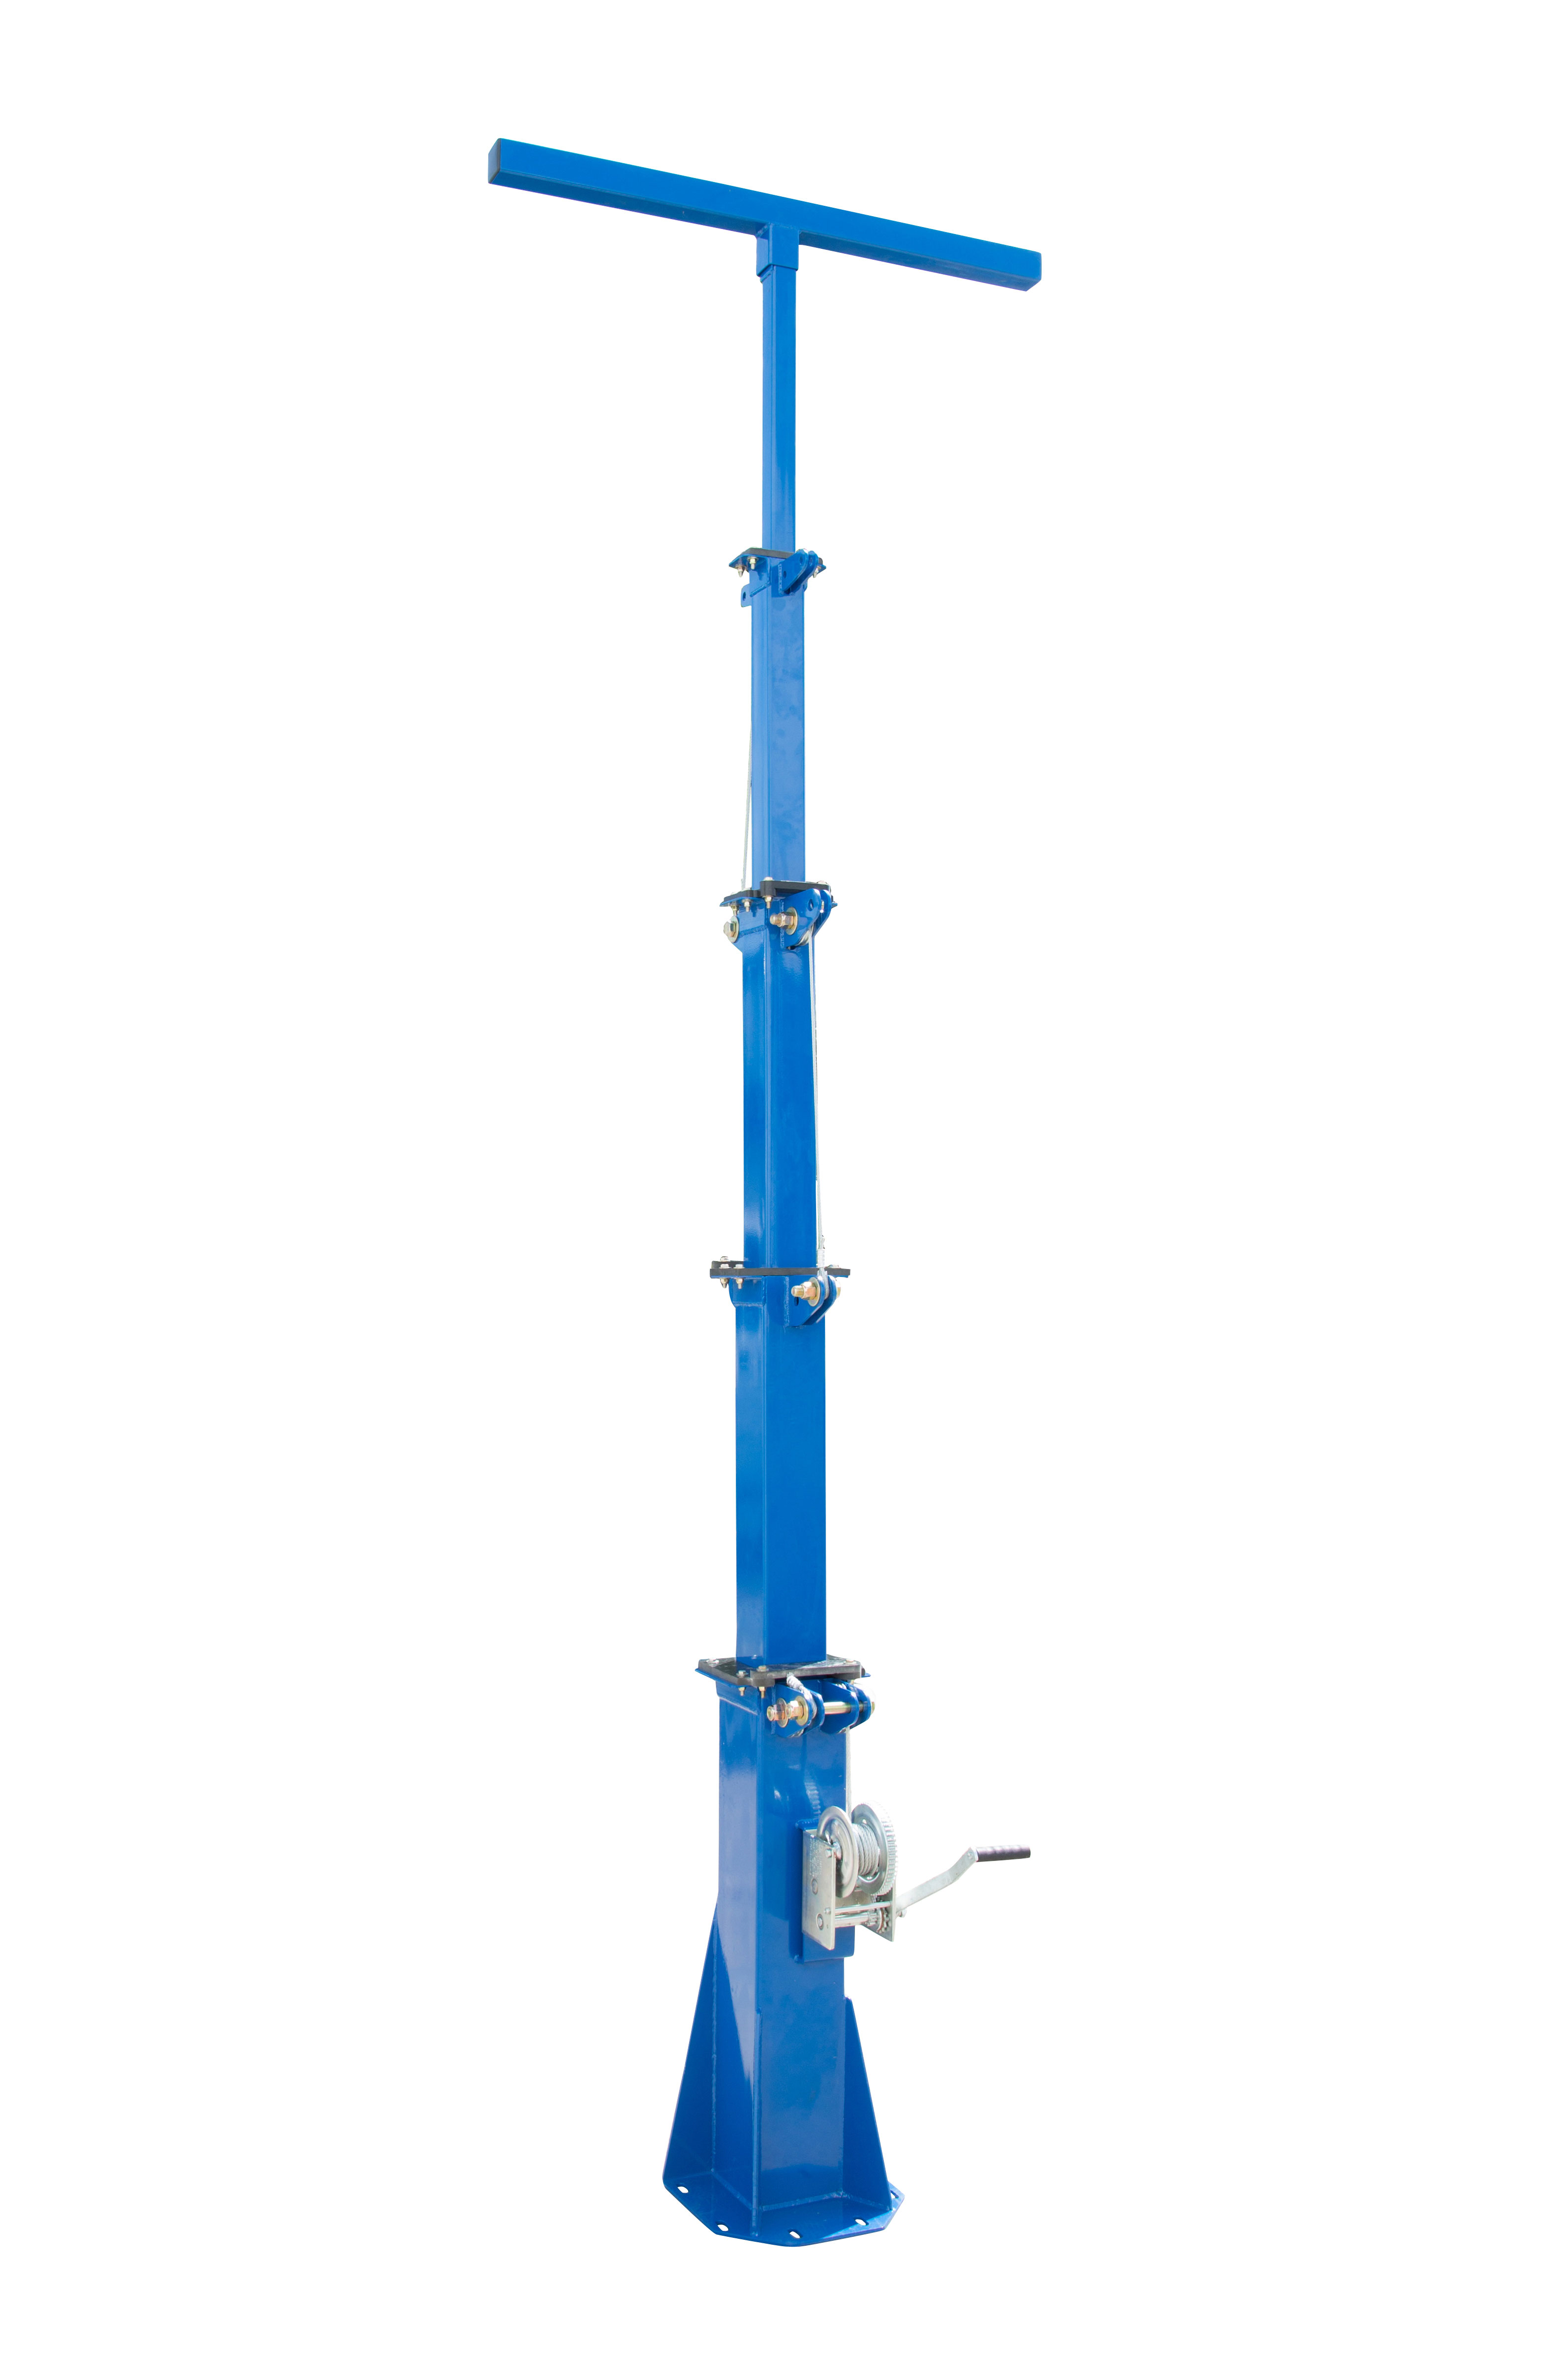 18' fixed-mount collapsible light mast